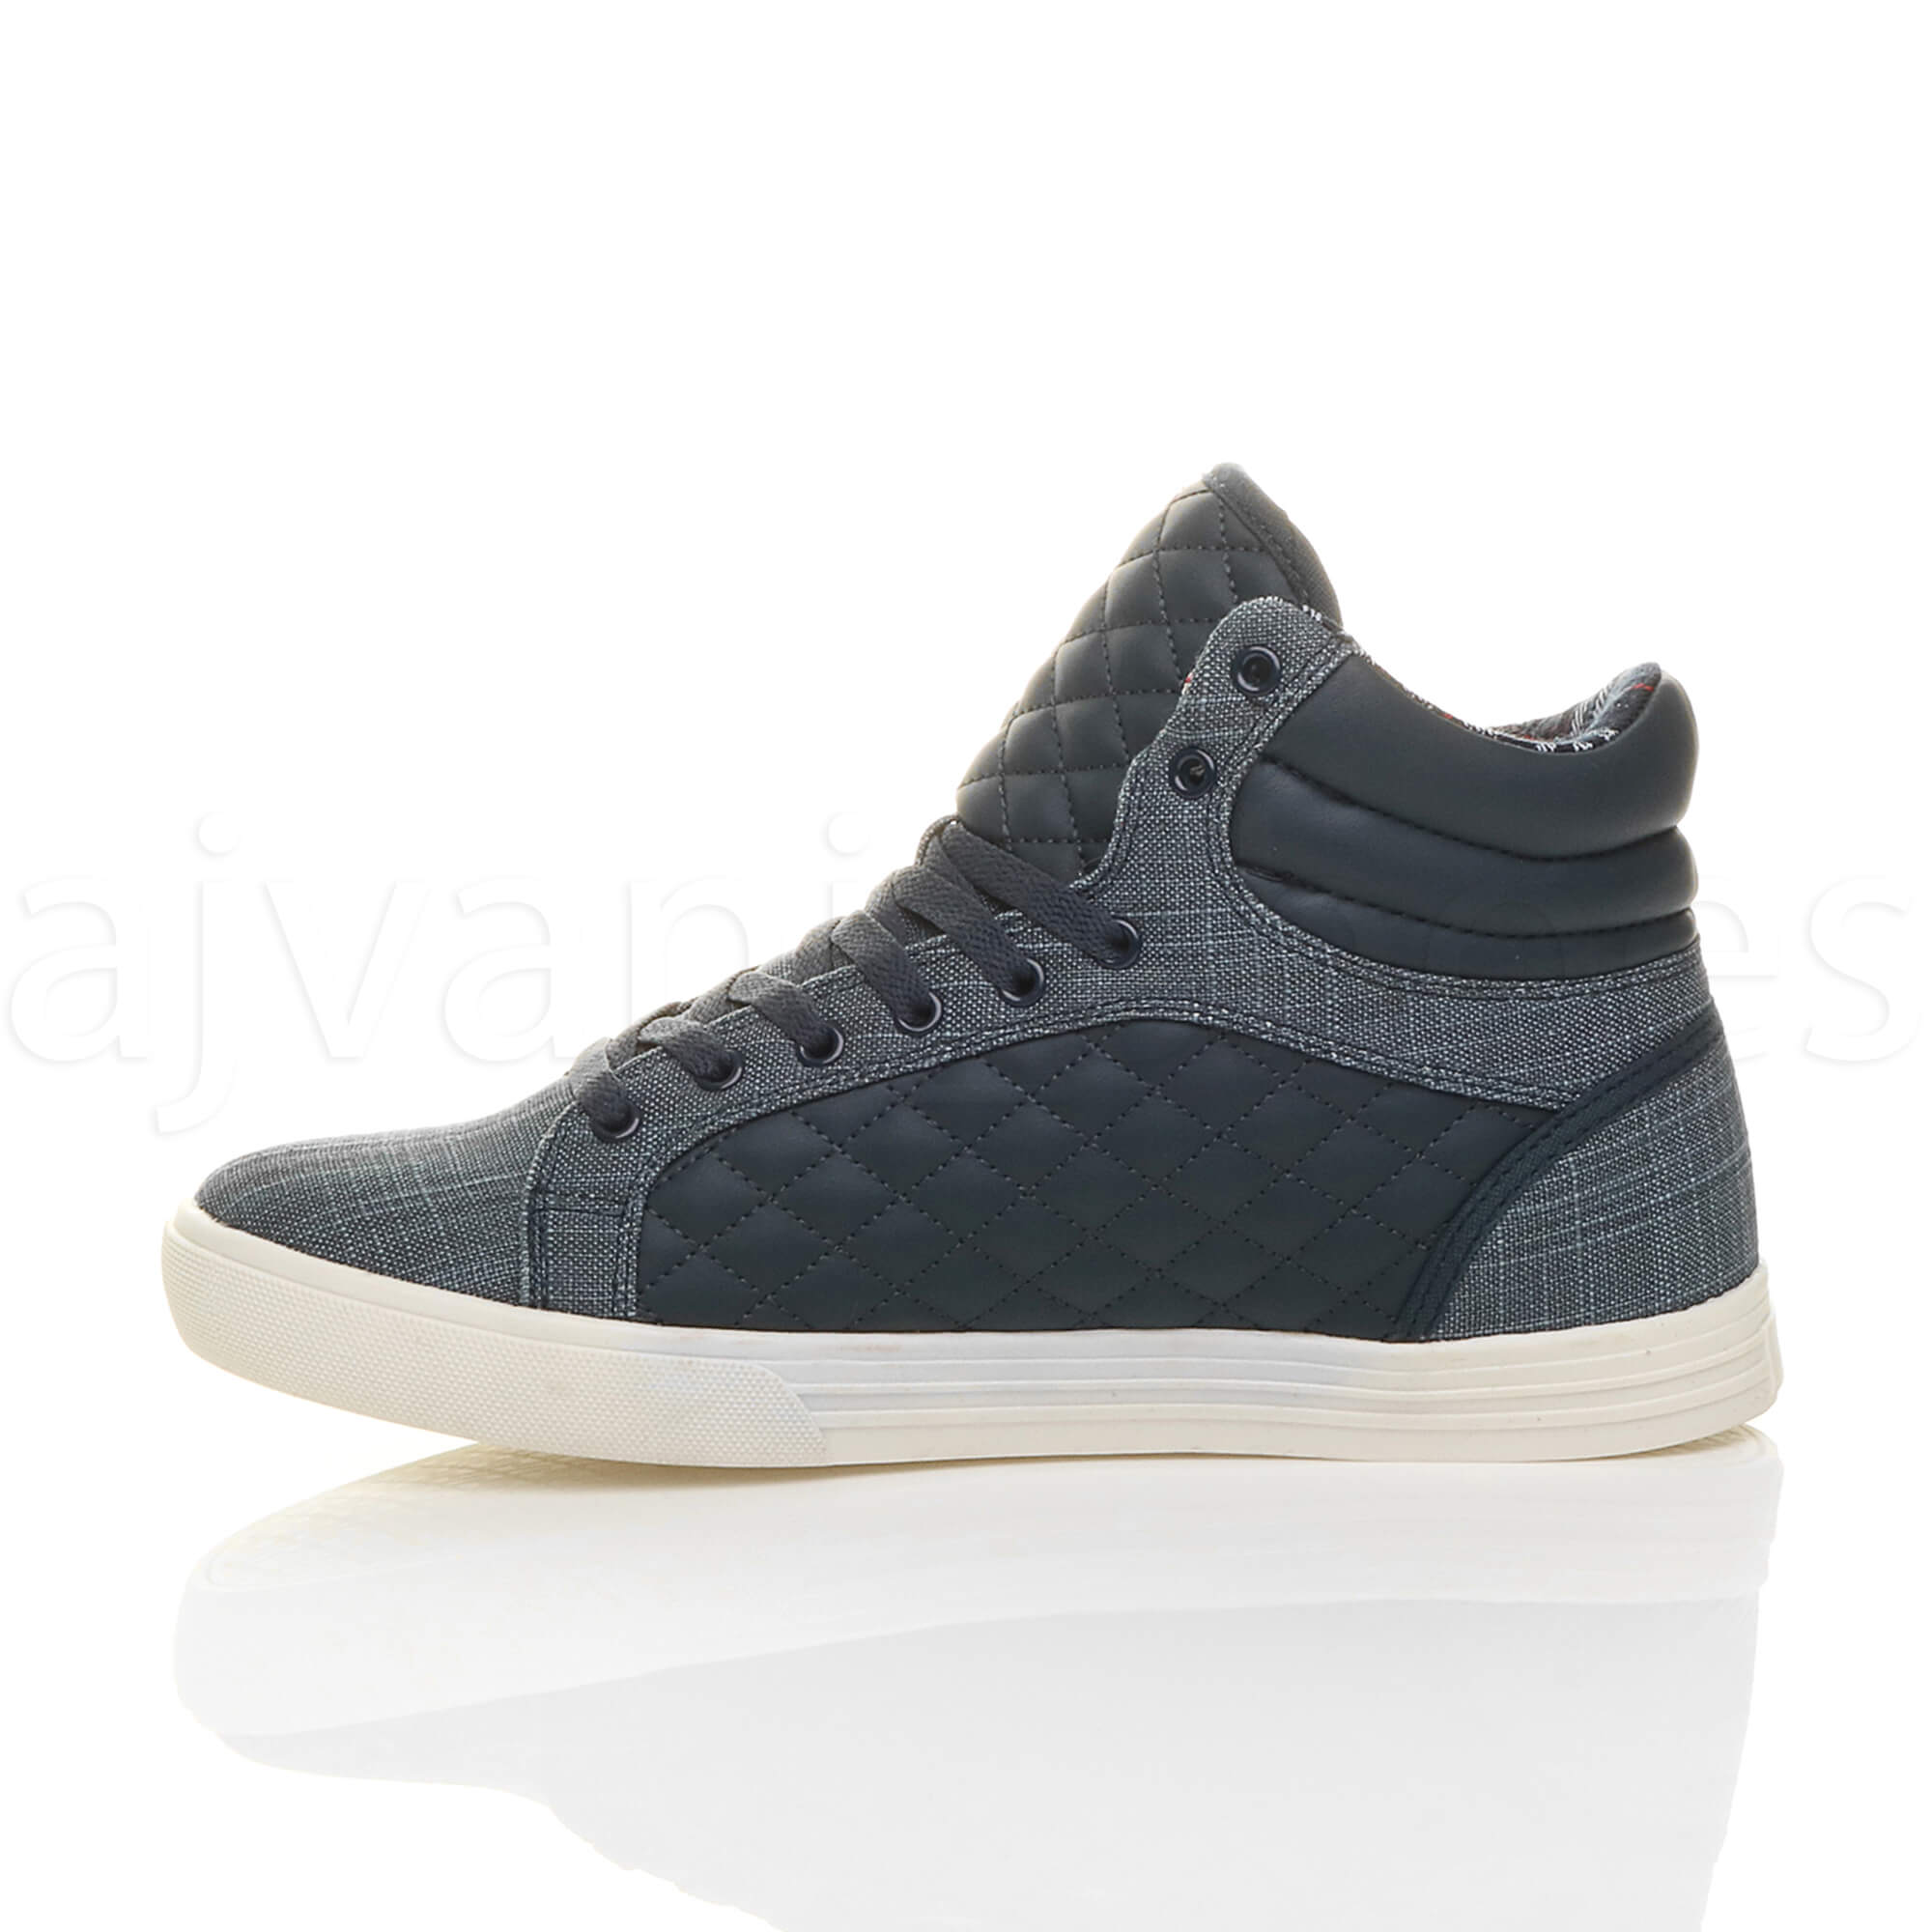 MENS-QUILTED-LACE-UP-FLAT-CASUAL-HI-HIGH-TOP-TRAINERS-SHOES-ANKLE-BOOTS-SIZE thumbnail 25